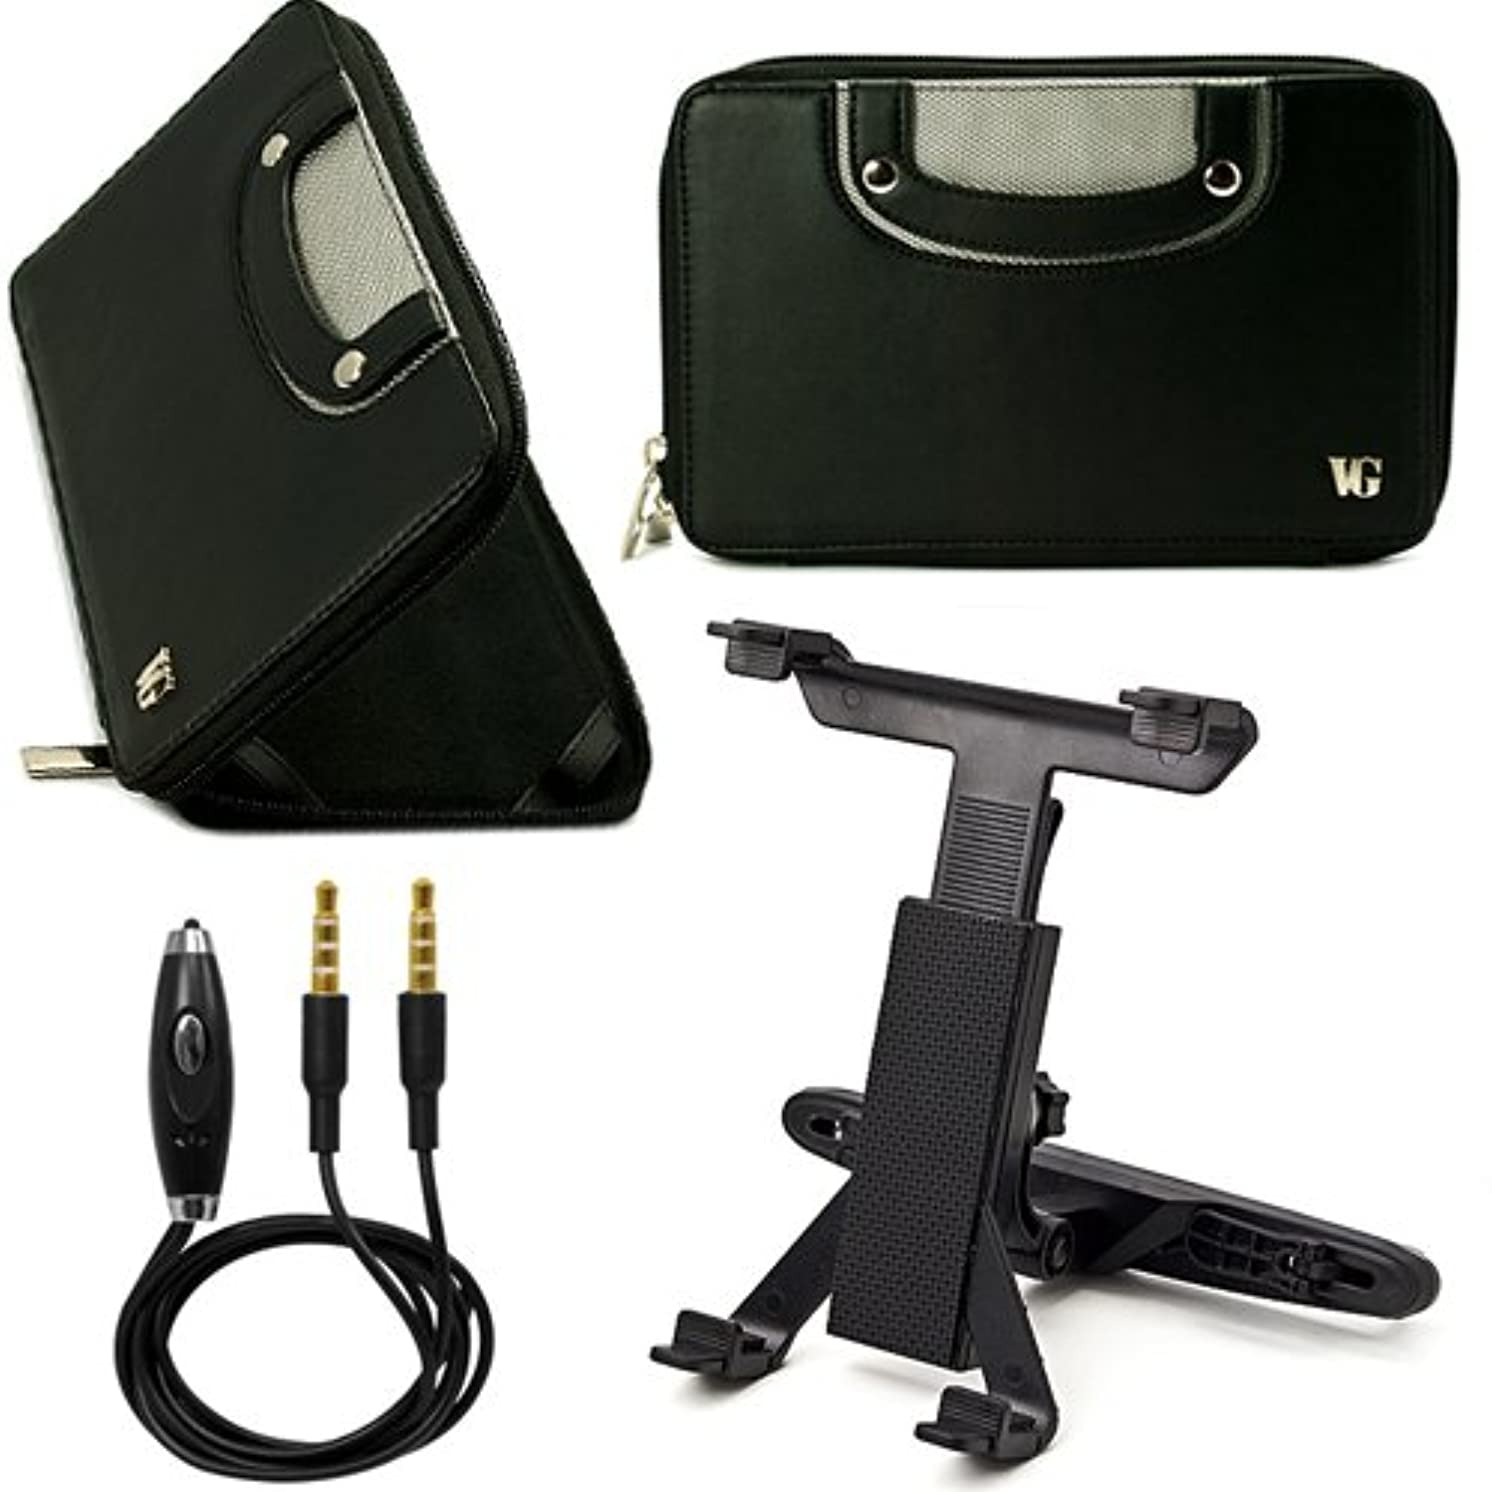 """Black VG Executive Leatherette Premium Book Style Protective Folio Case with PU Leather Carrying Handles for Nextbook Premium 7se Android Google Play 7"""" TFT Capacitive Display Tablet + Headrest Tablet Mount Holder with Adjustable Grip Legs + 3.5mm to 3.5mm Stereo Auxiliary Audio Cable With Built In Microphone & on/off Switch"""